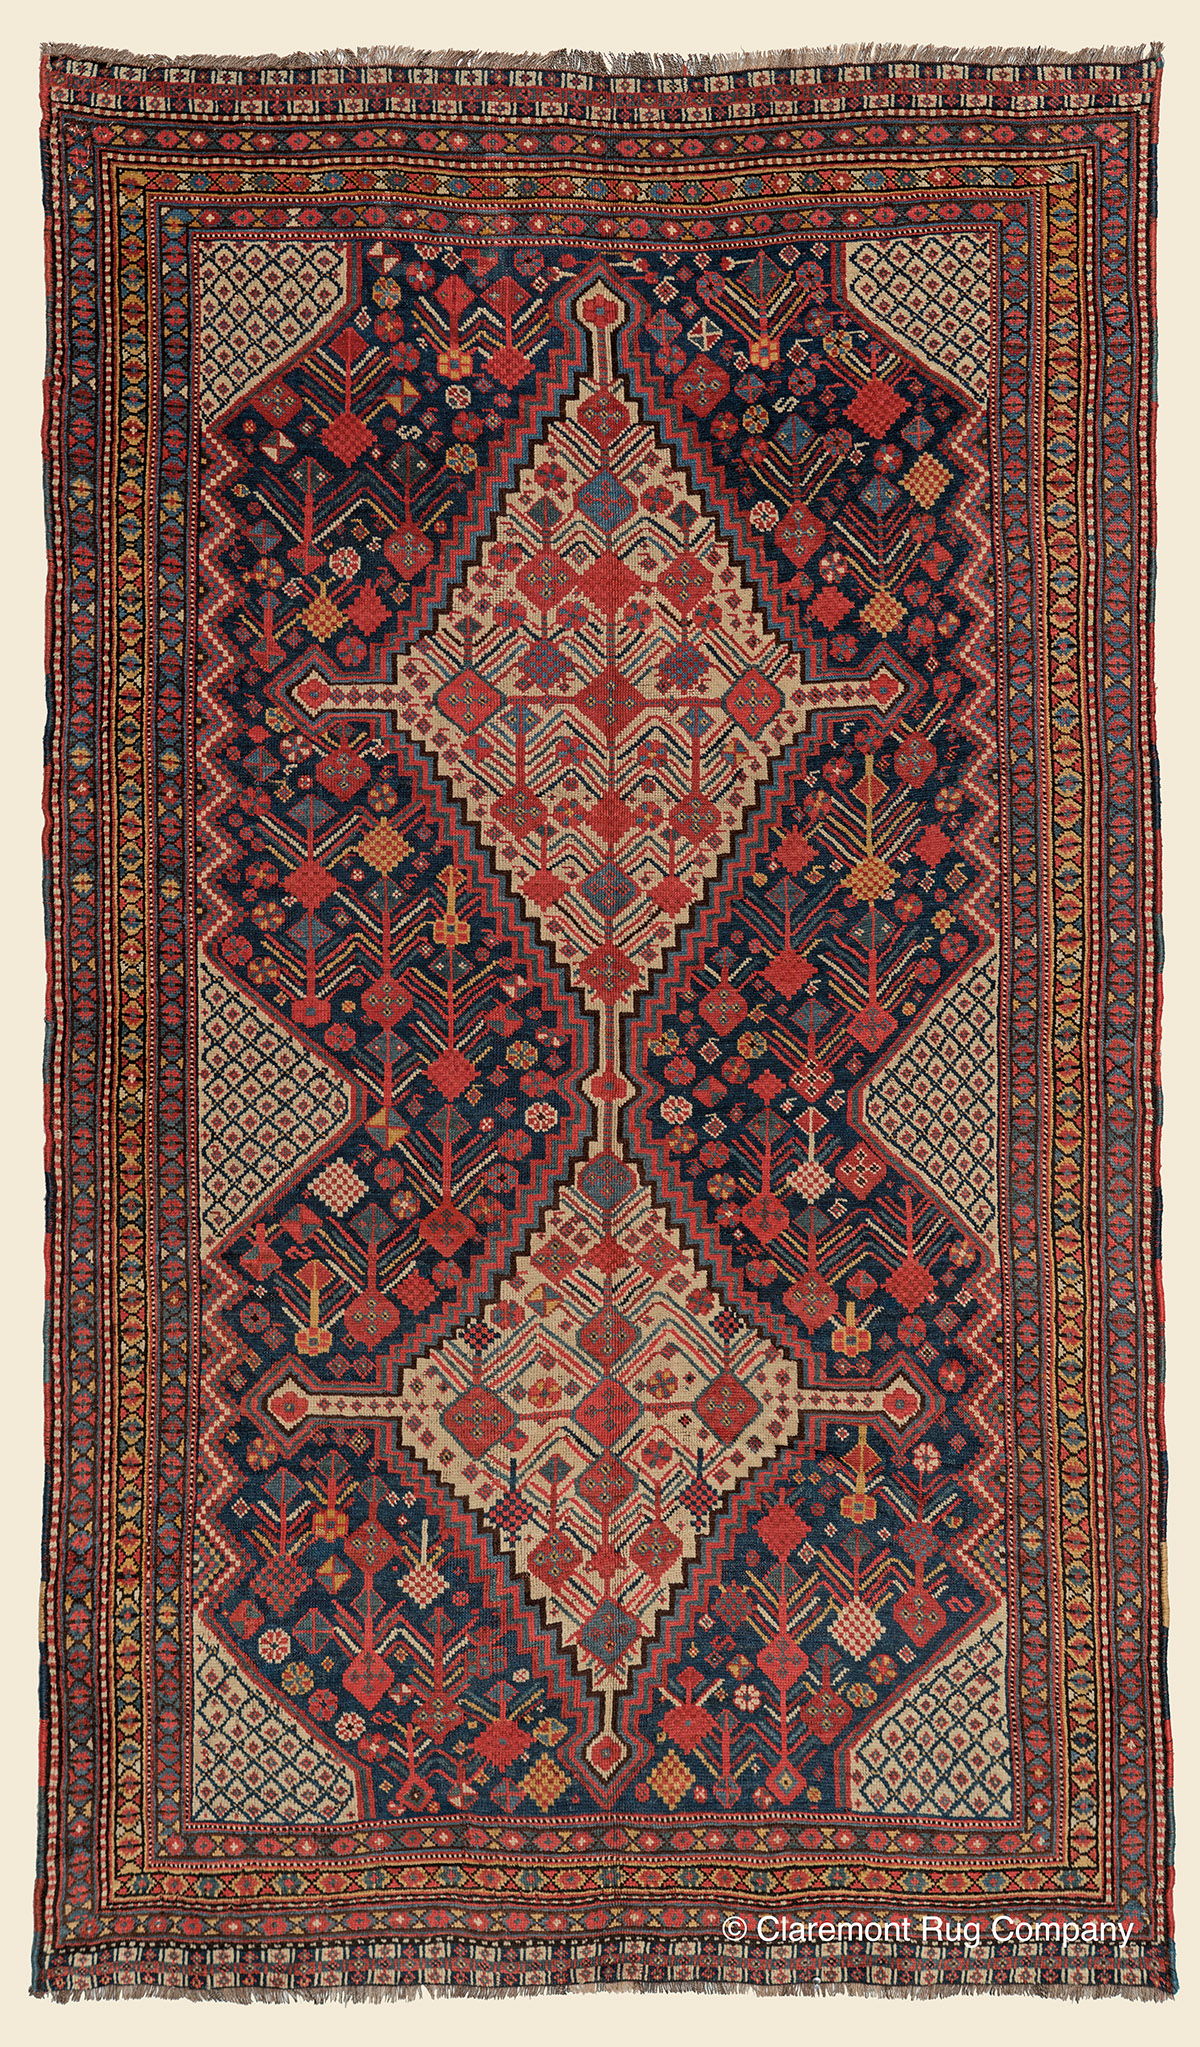 19th century Antique botanical Persian floral Collectible Oriental art-level blue Qashqai Tribal